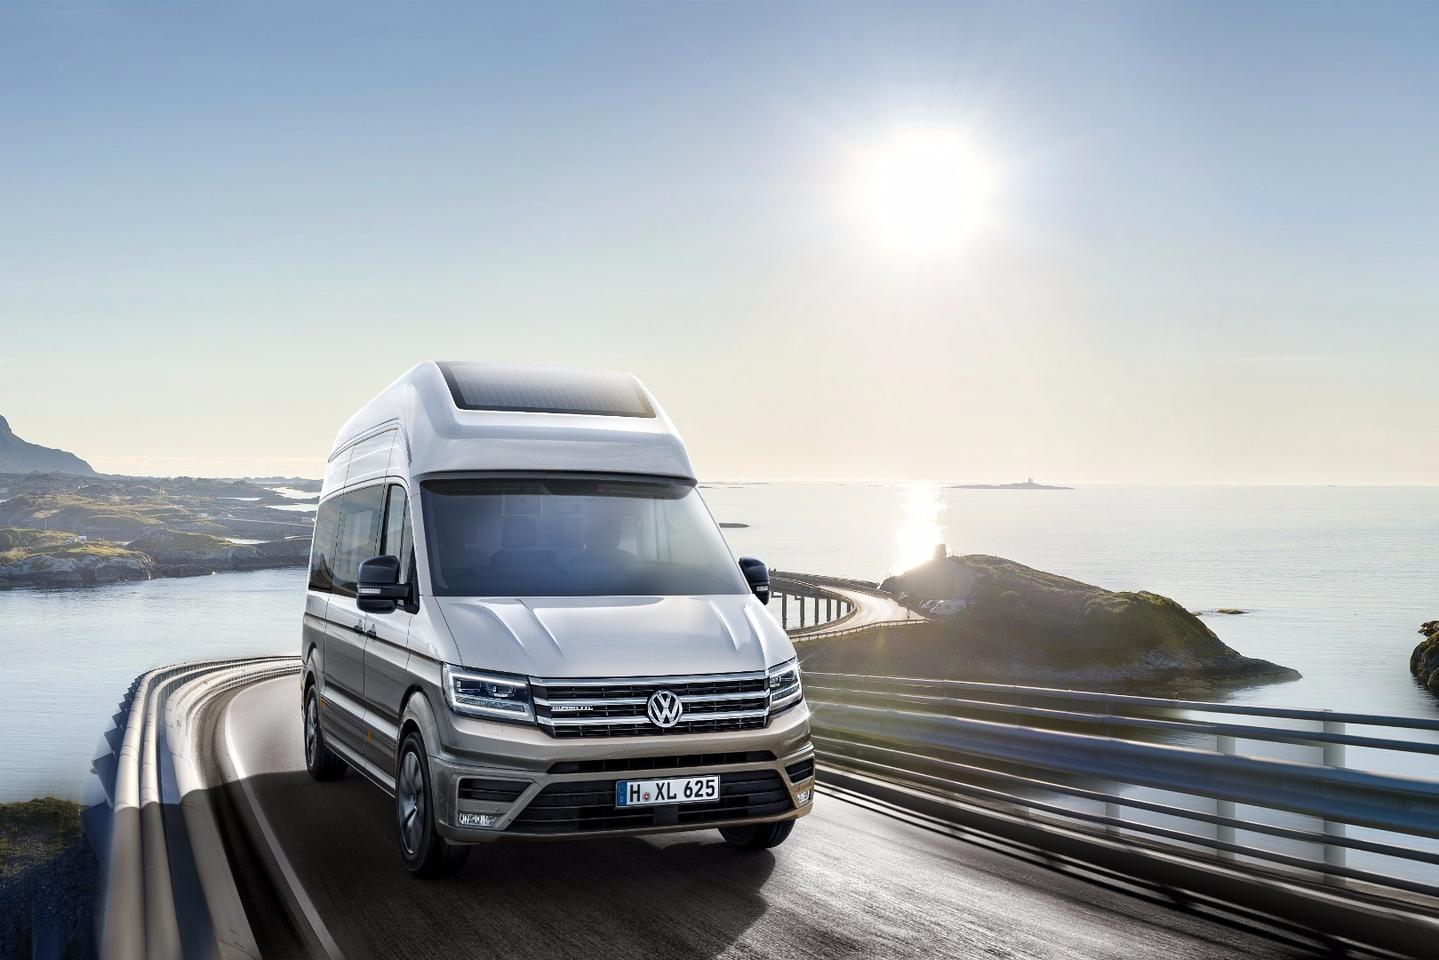 Volkswagen says the California XXLconcept is based on a medium-wheelbase Crafter, and the van's height of 2.9 m indicates the highest Crafter roof option